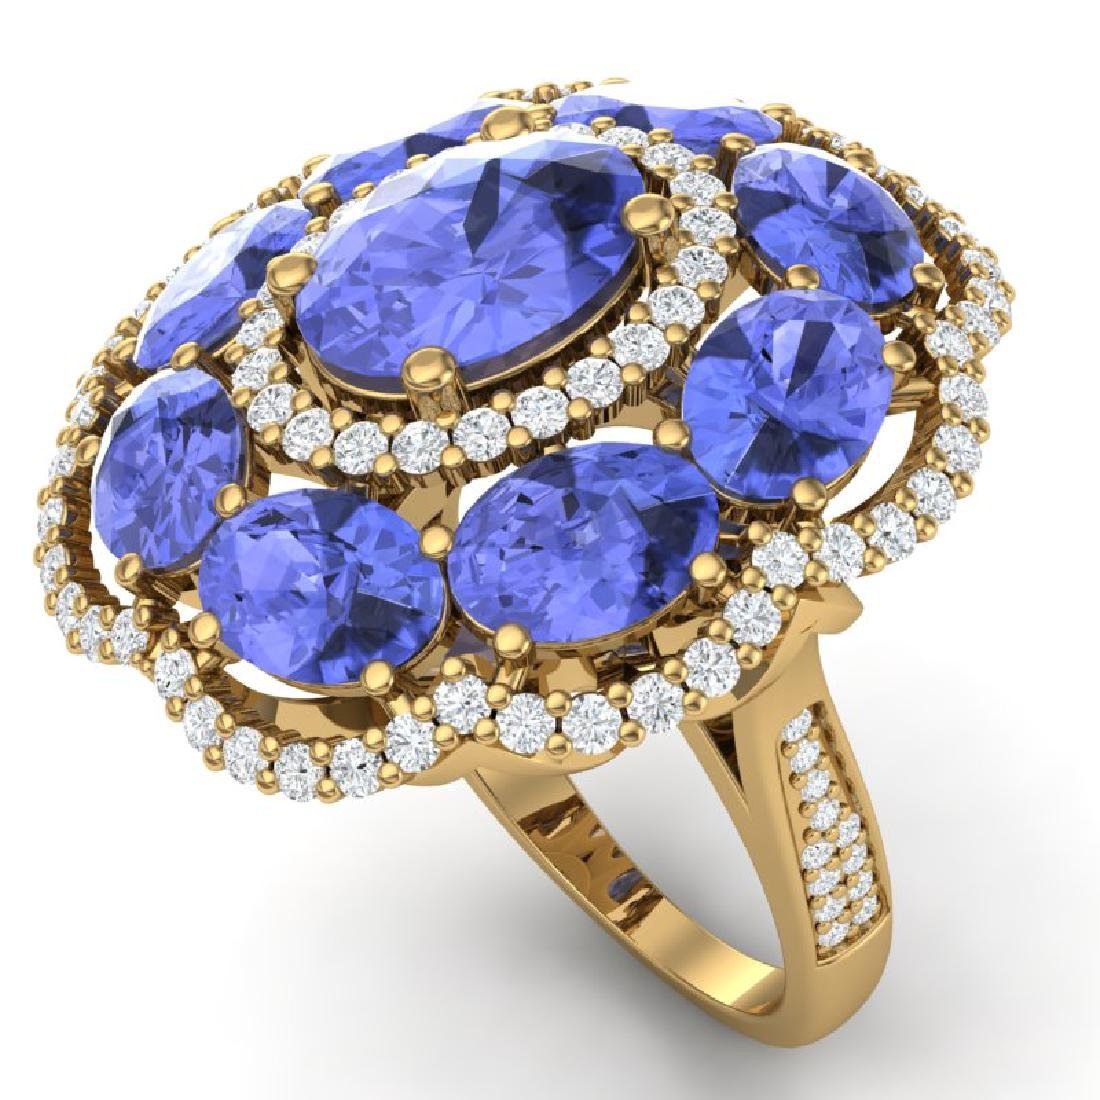 15.24 CTW Royalty Tanzanite & VS Diamond Ring 18K